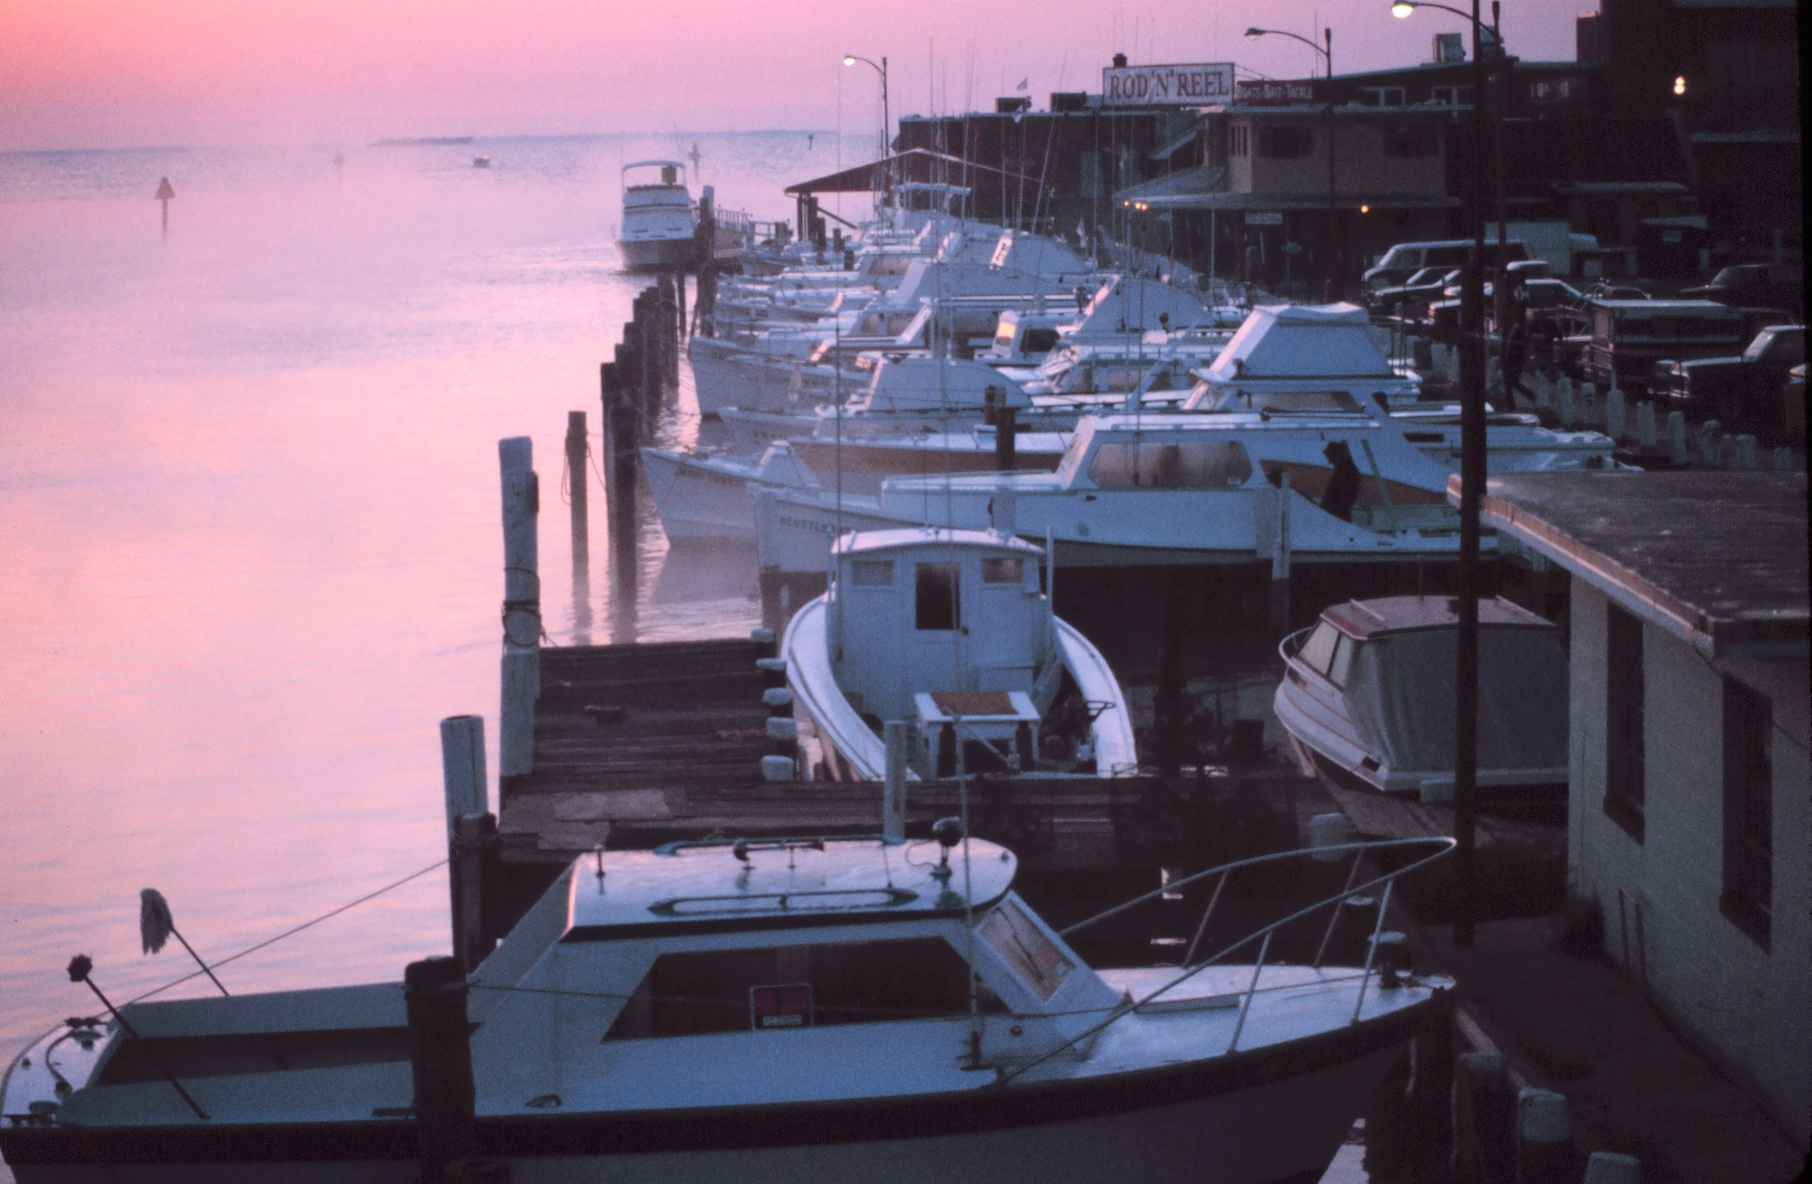 Boats docked in a Chesapeake Bay harbor<div class='credit'><strong>Credit:</strong> Boats docked in a Chesapeake Bay harbor</div>